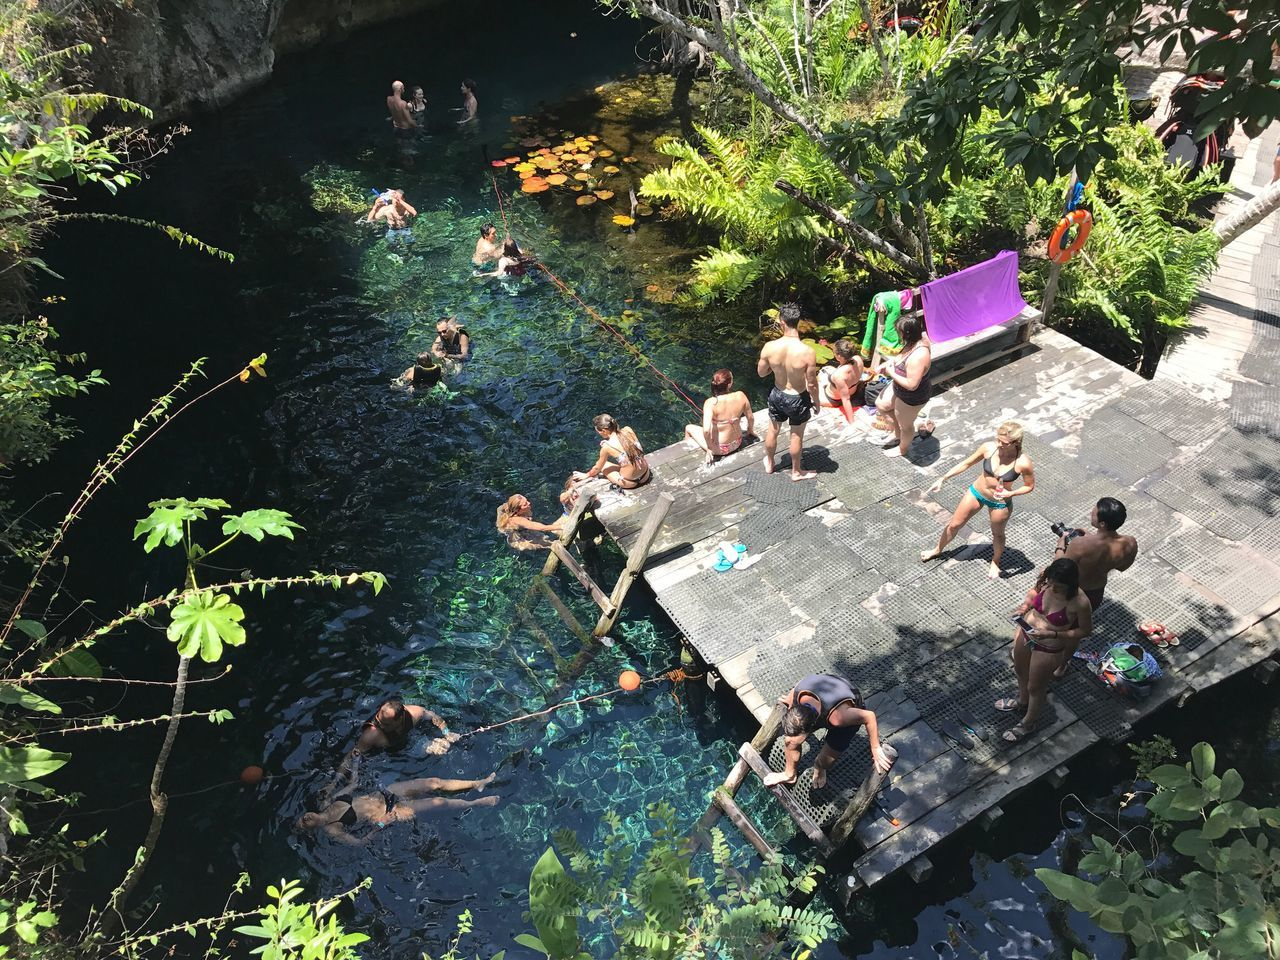 Paradise Cenote Cave Sinkhole Cavern Water Nature Tulum Mexico Top Perspective Nofilter Noedit People Swimming Snorkeling Sunny